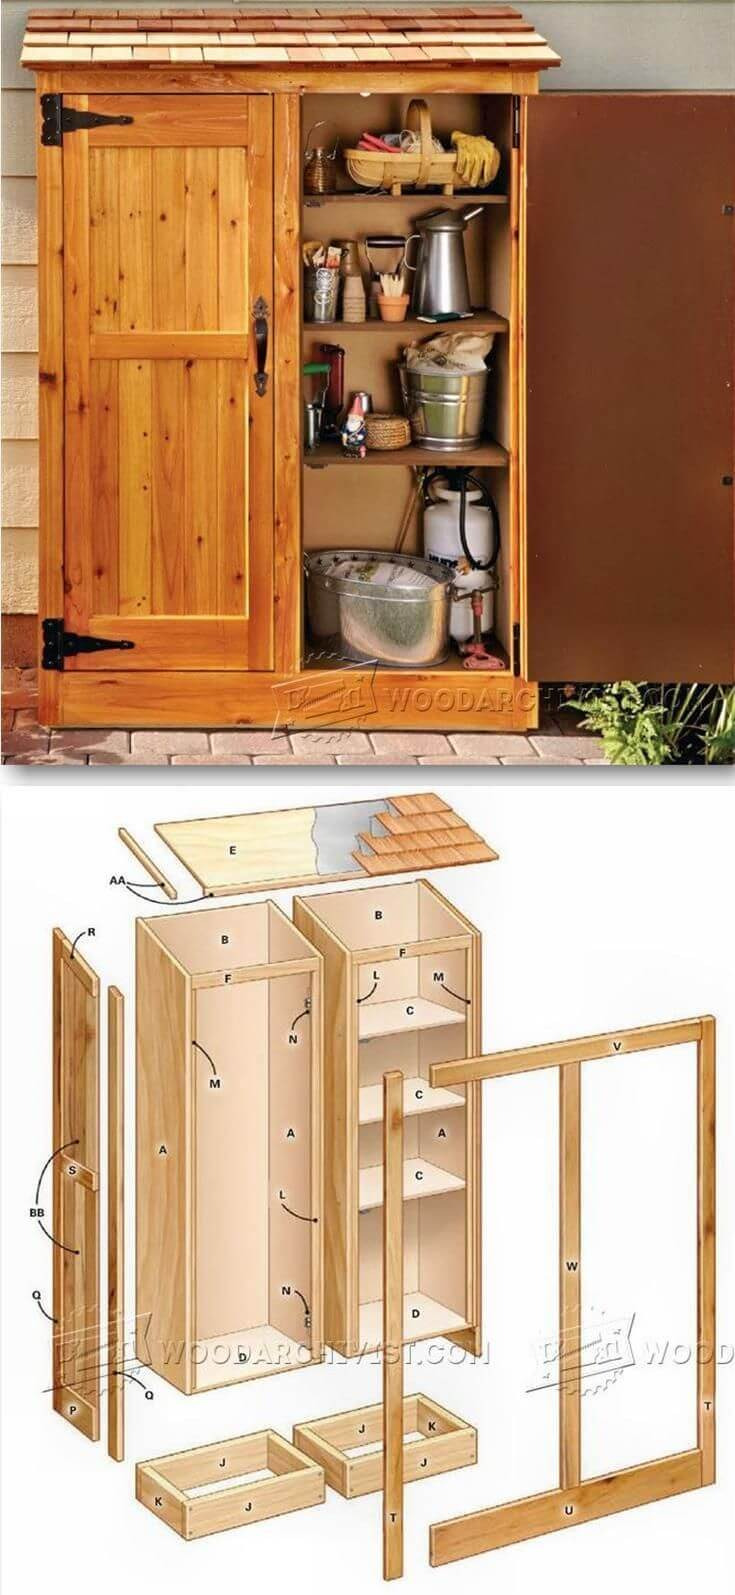 Outdoor Storage Cabinets with Doors Fresh 27 Best Small Storage Shed Projects Ideas and Designs for 2020